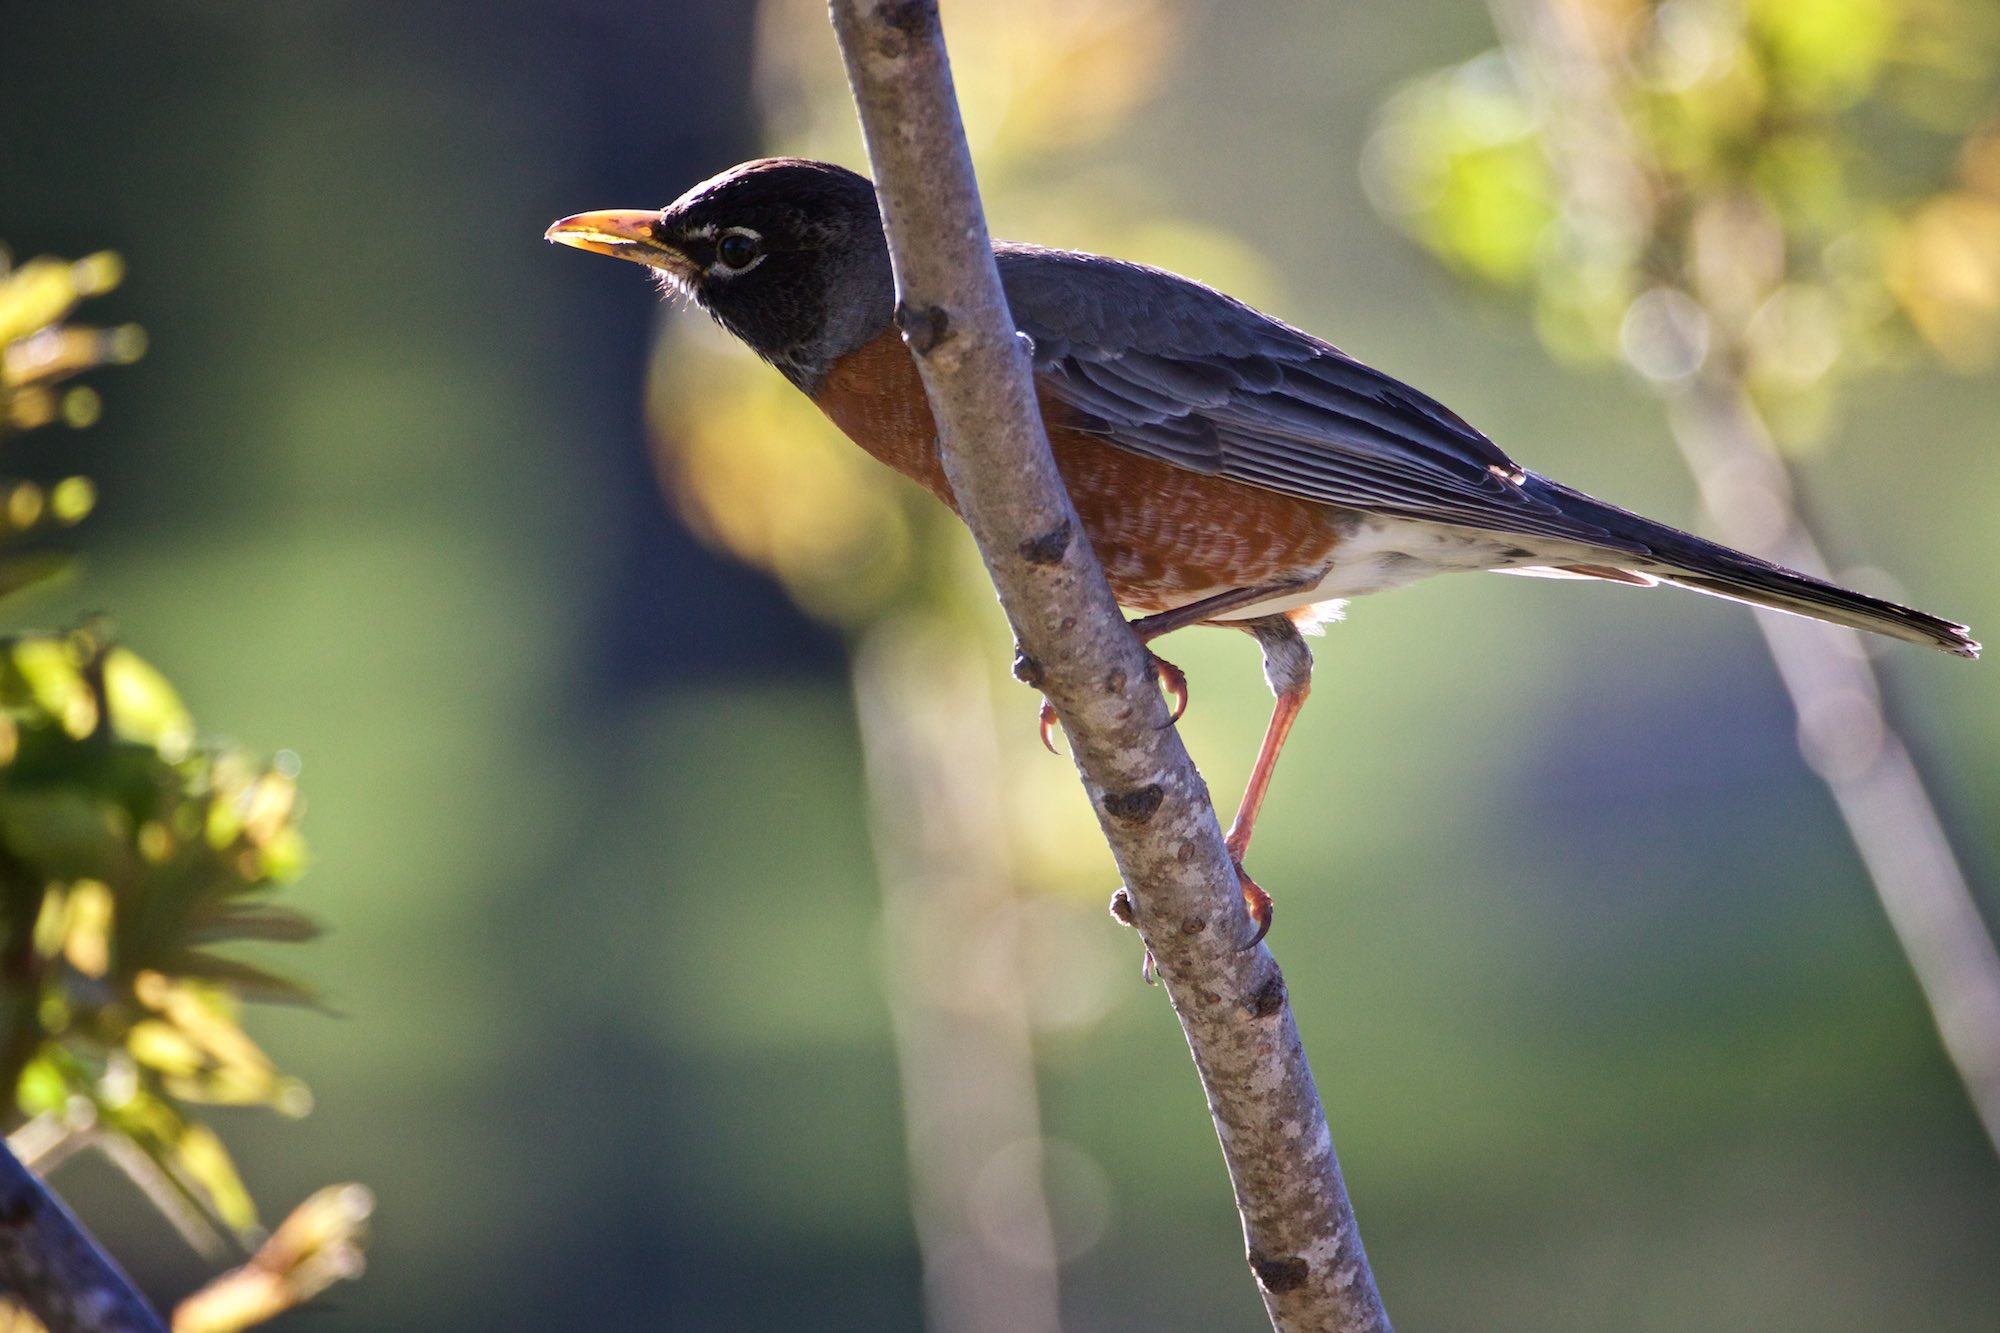 American Robin - Click on this photo to see more images from today.